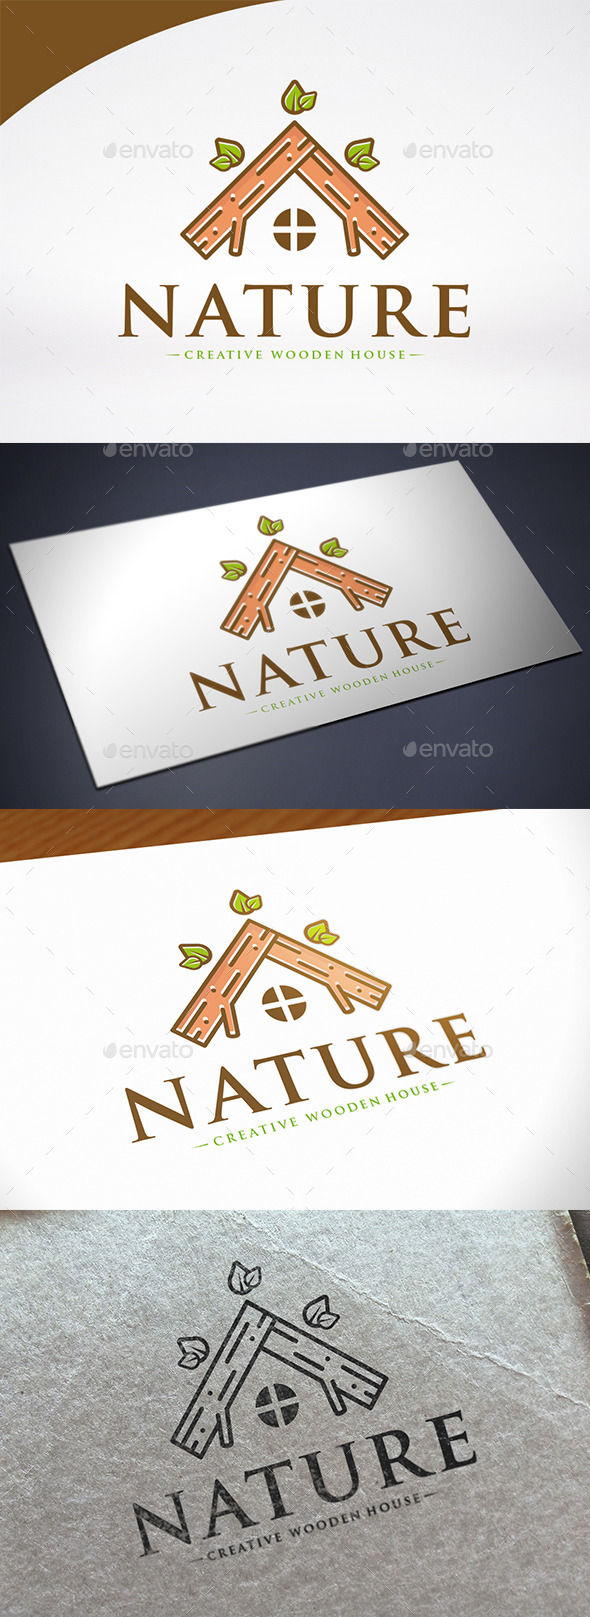 Wooden House Logo Template - Nature Logo Templates